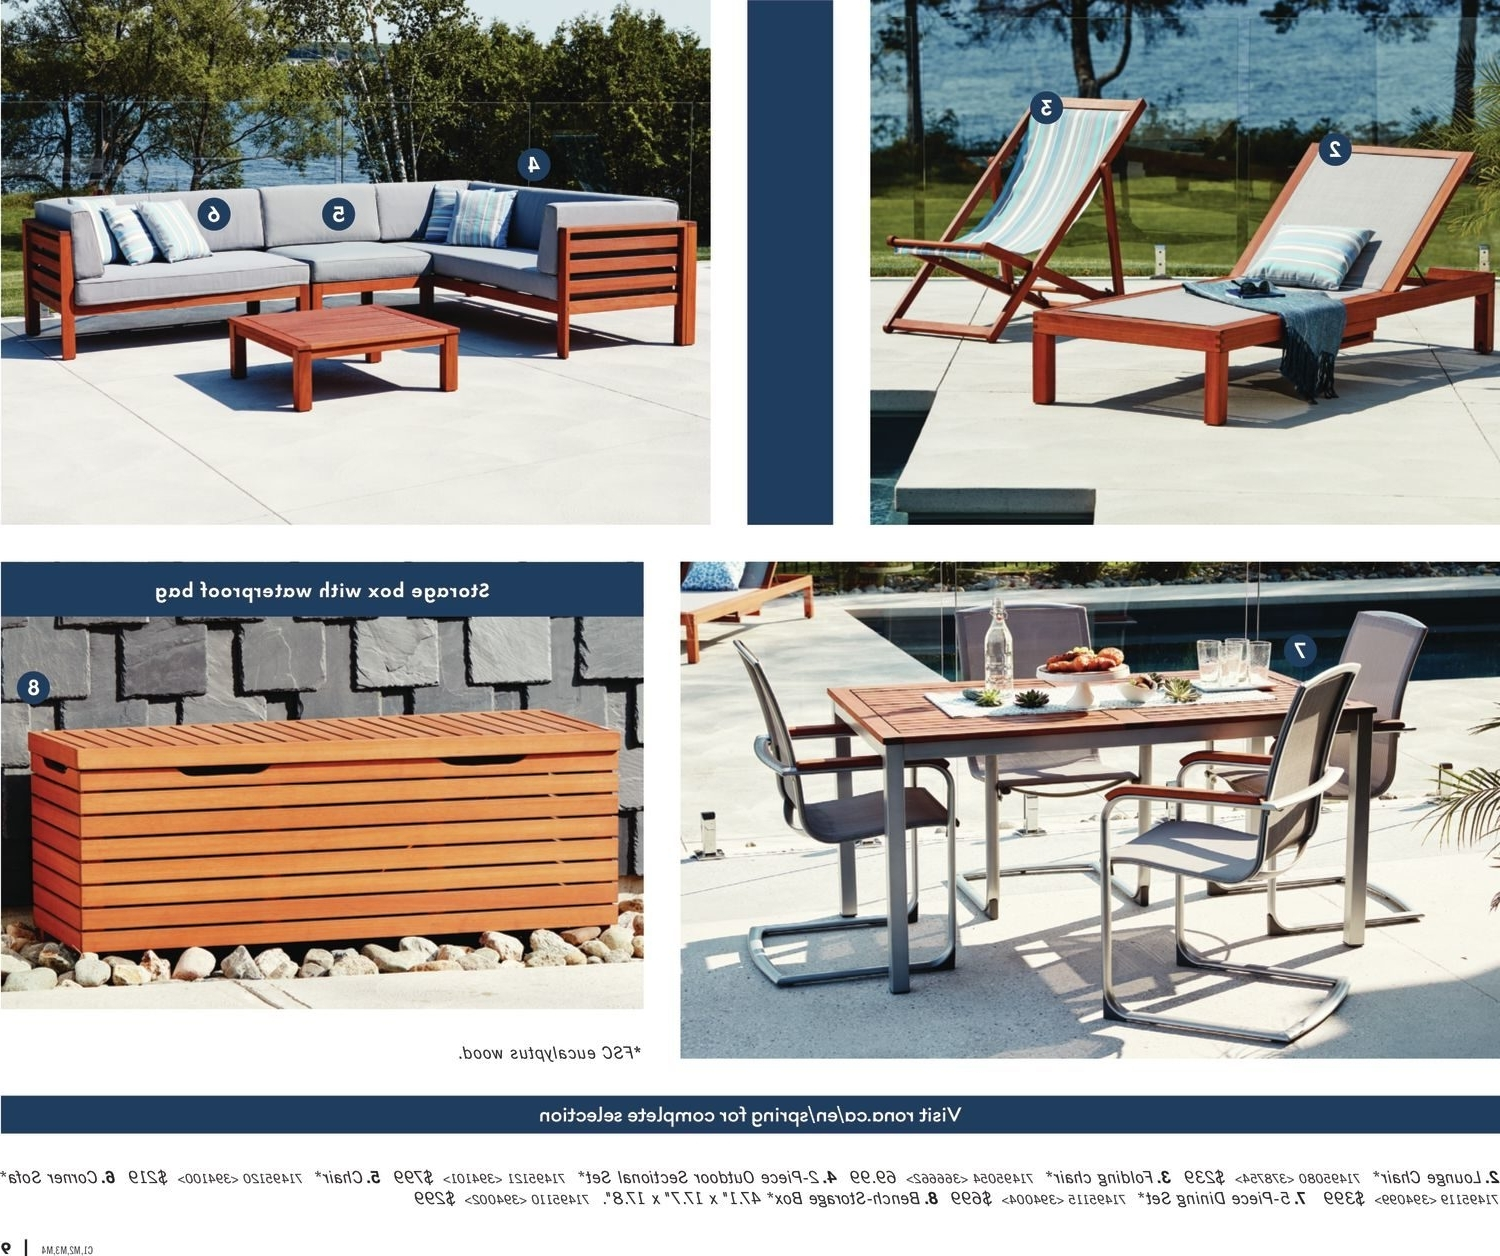 Rona Weekly Flyer – Enjoy Your Backyard – Mar 22 – Apr 25 Intended For Most Recent Rona Patio Rocking Chairs (View 11 of 15)